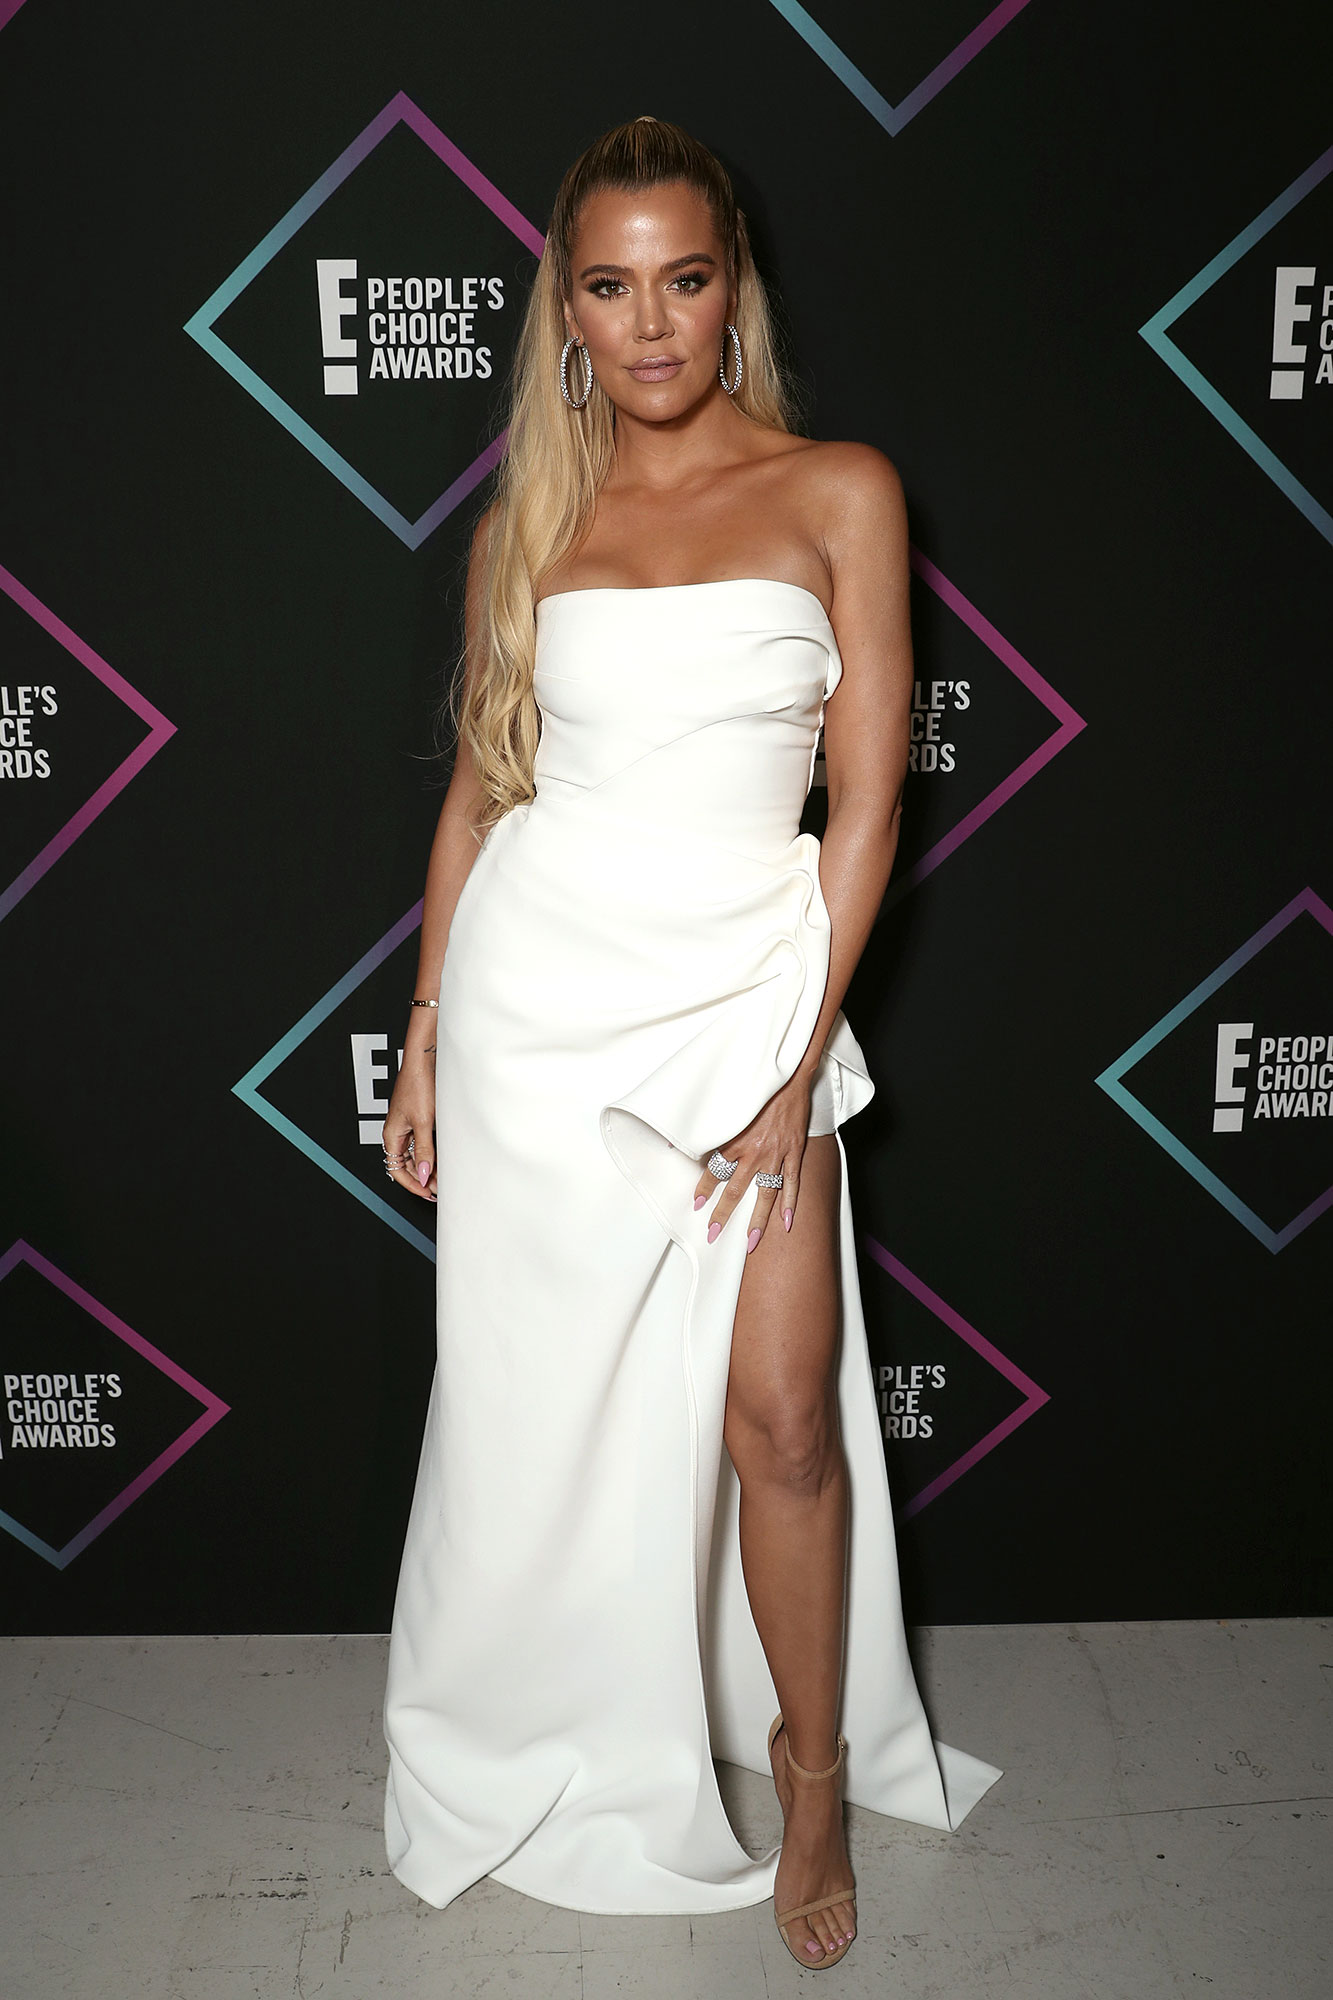 Khloe: 'Sometimes the Person You Want Most Is the Person You're Best Without' - Khloe Kardashian backstage during the 2018 E! People's Choice Awards held at the Barker Hangar on November 11, 2018.